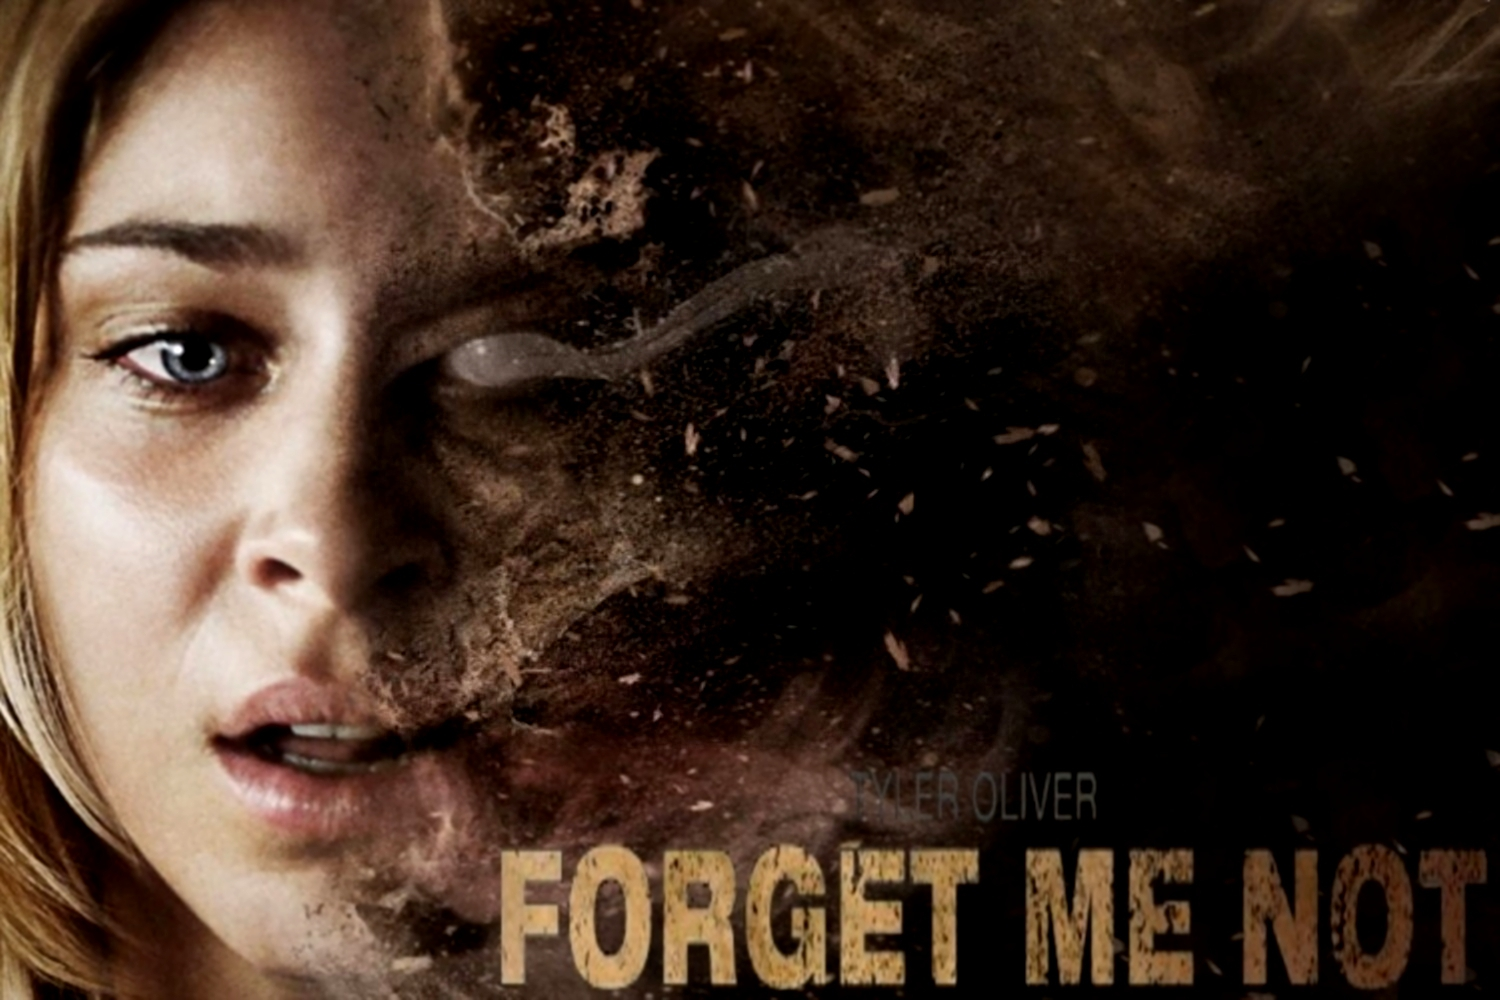 Не забывай меня (Незабудка)/ Forget Me Not (2009)